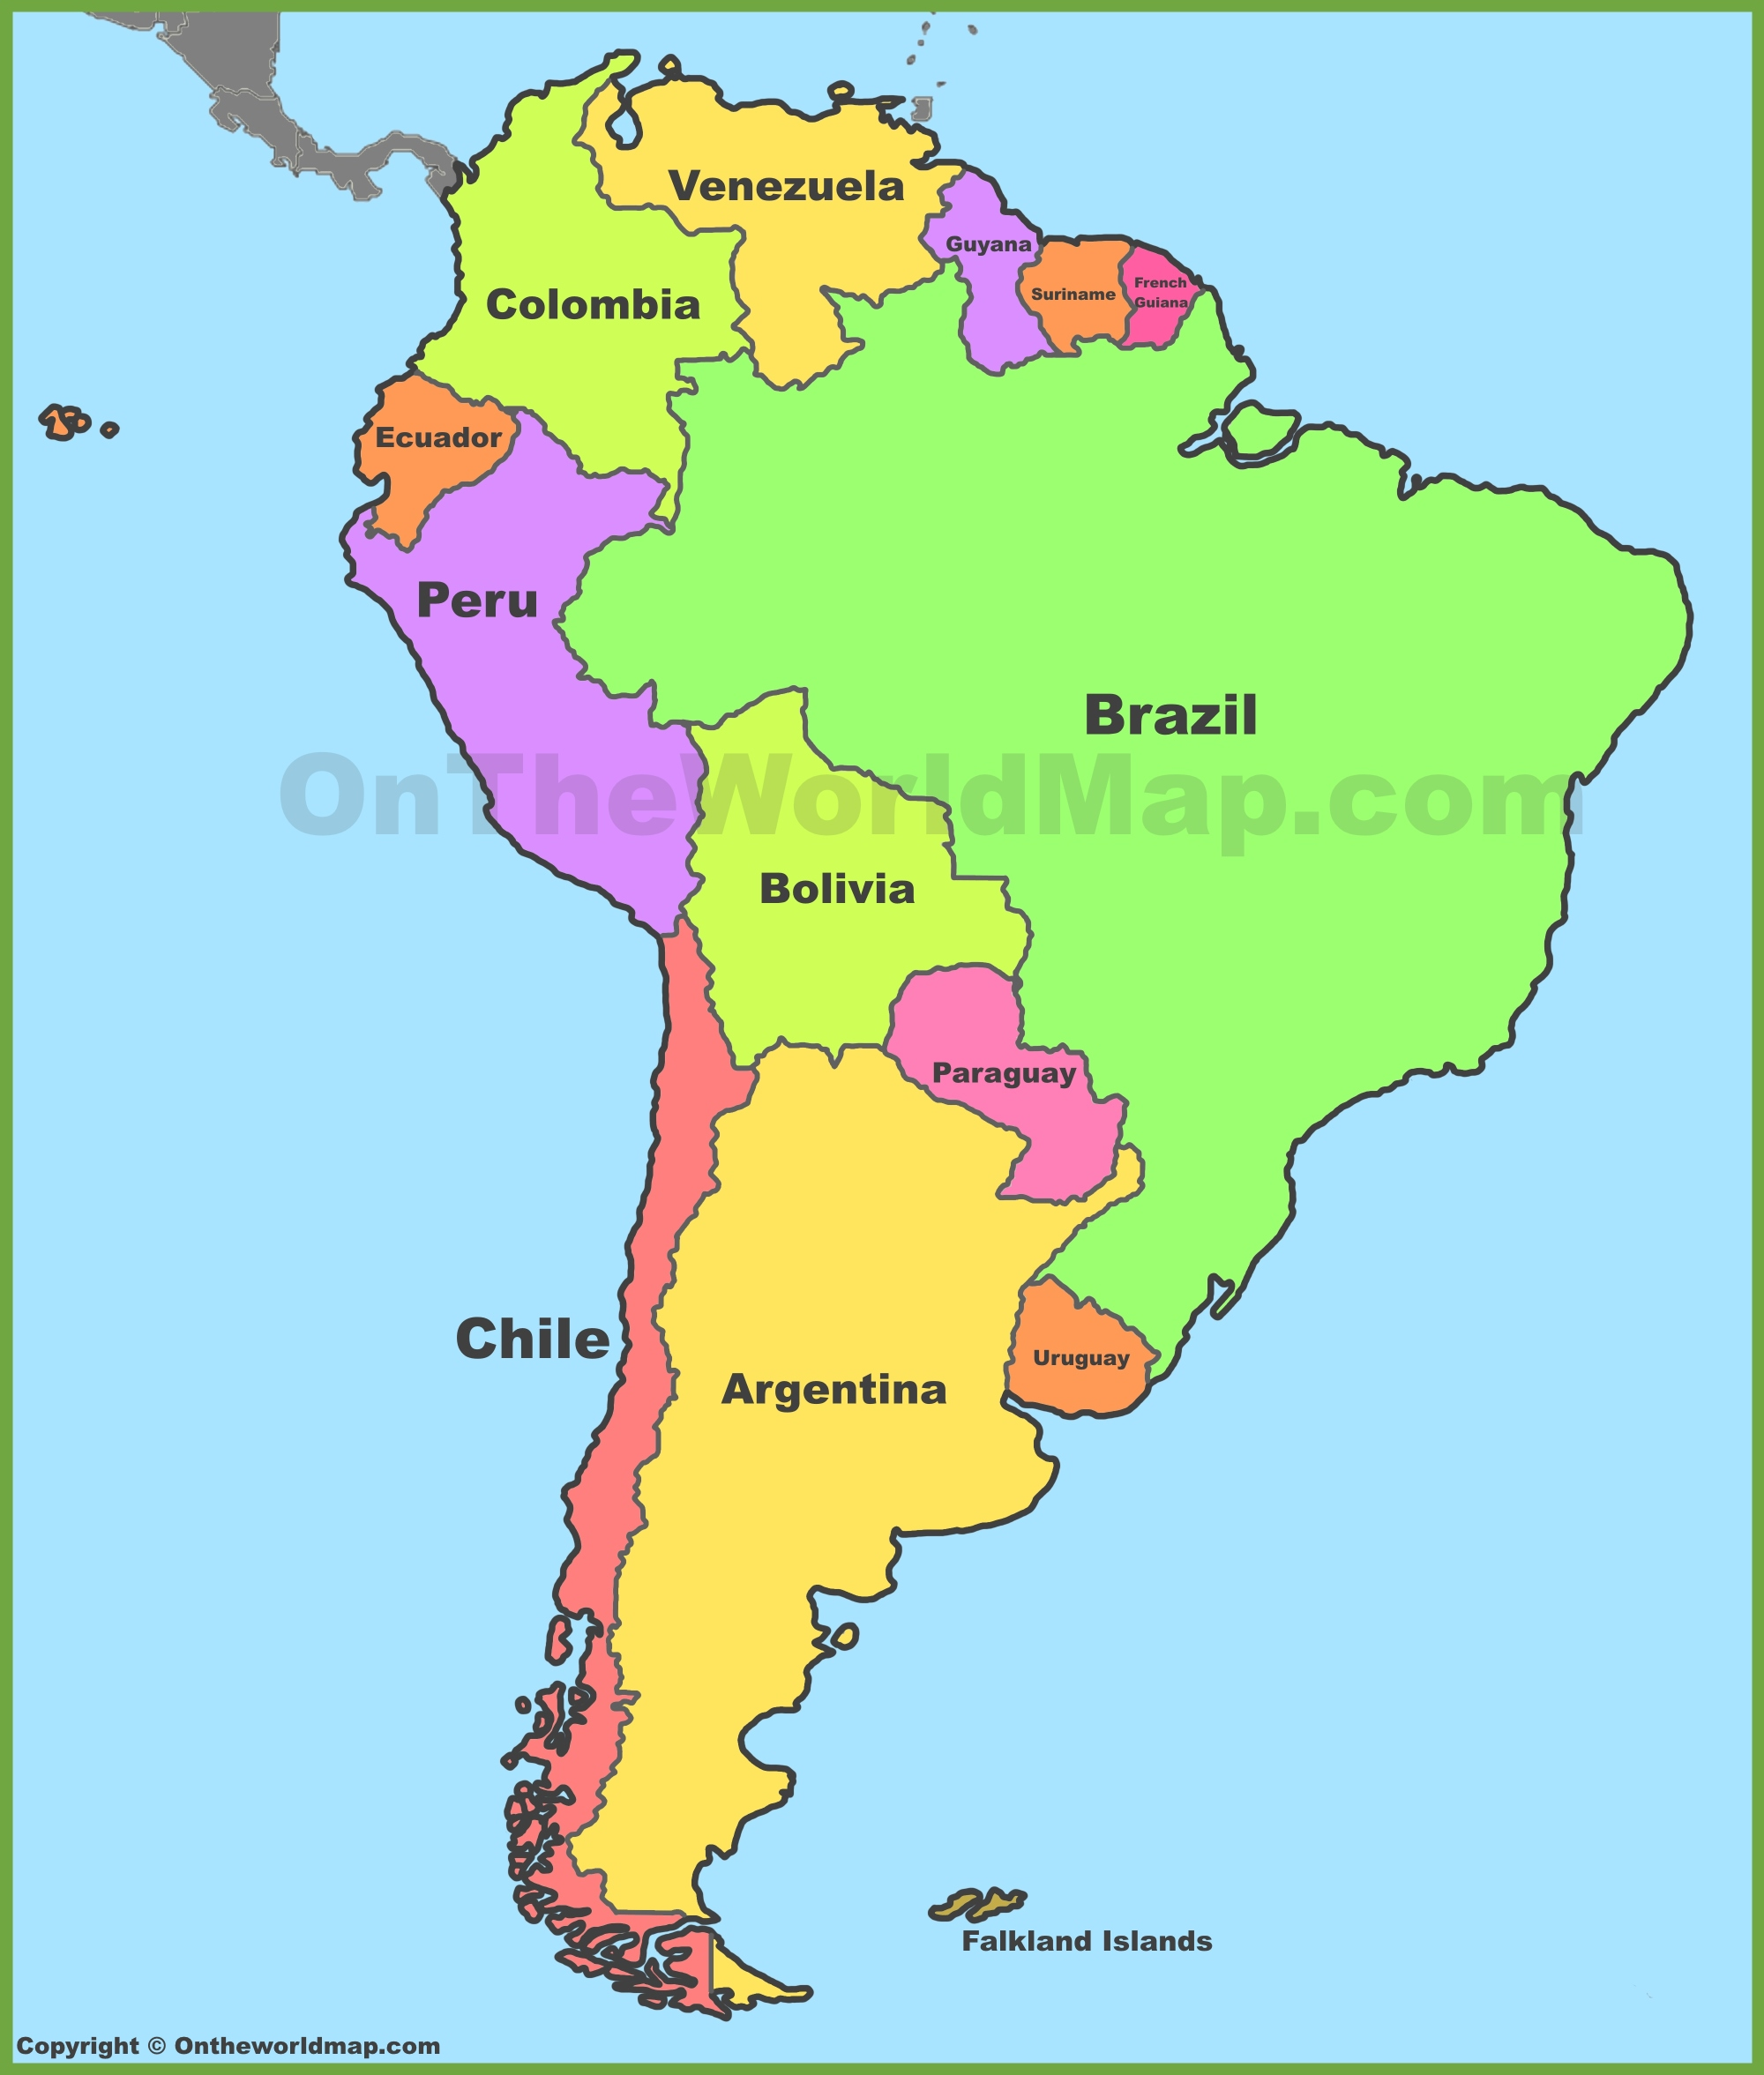 South America Maps Maps Of South America OnTheWorldMapcom - Sur america map